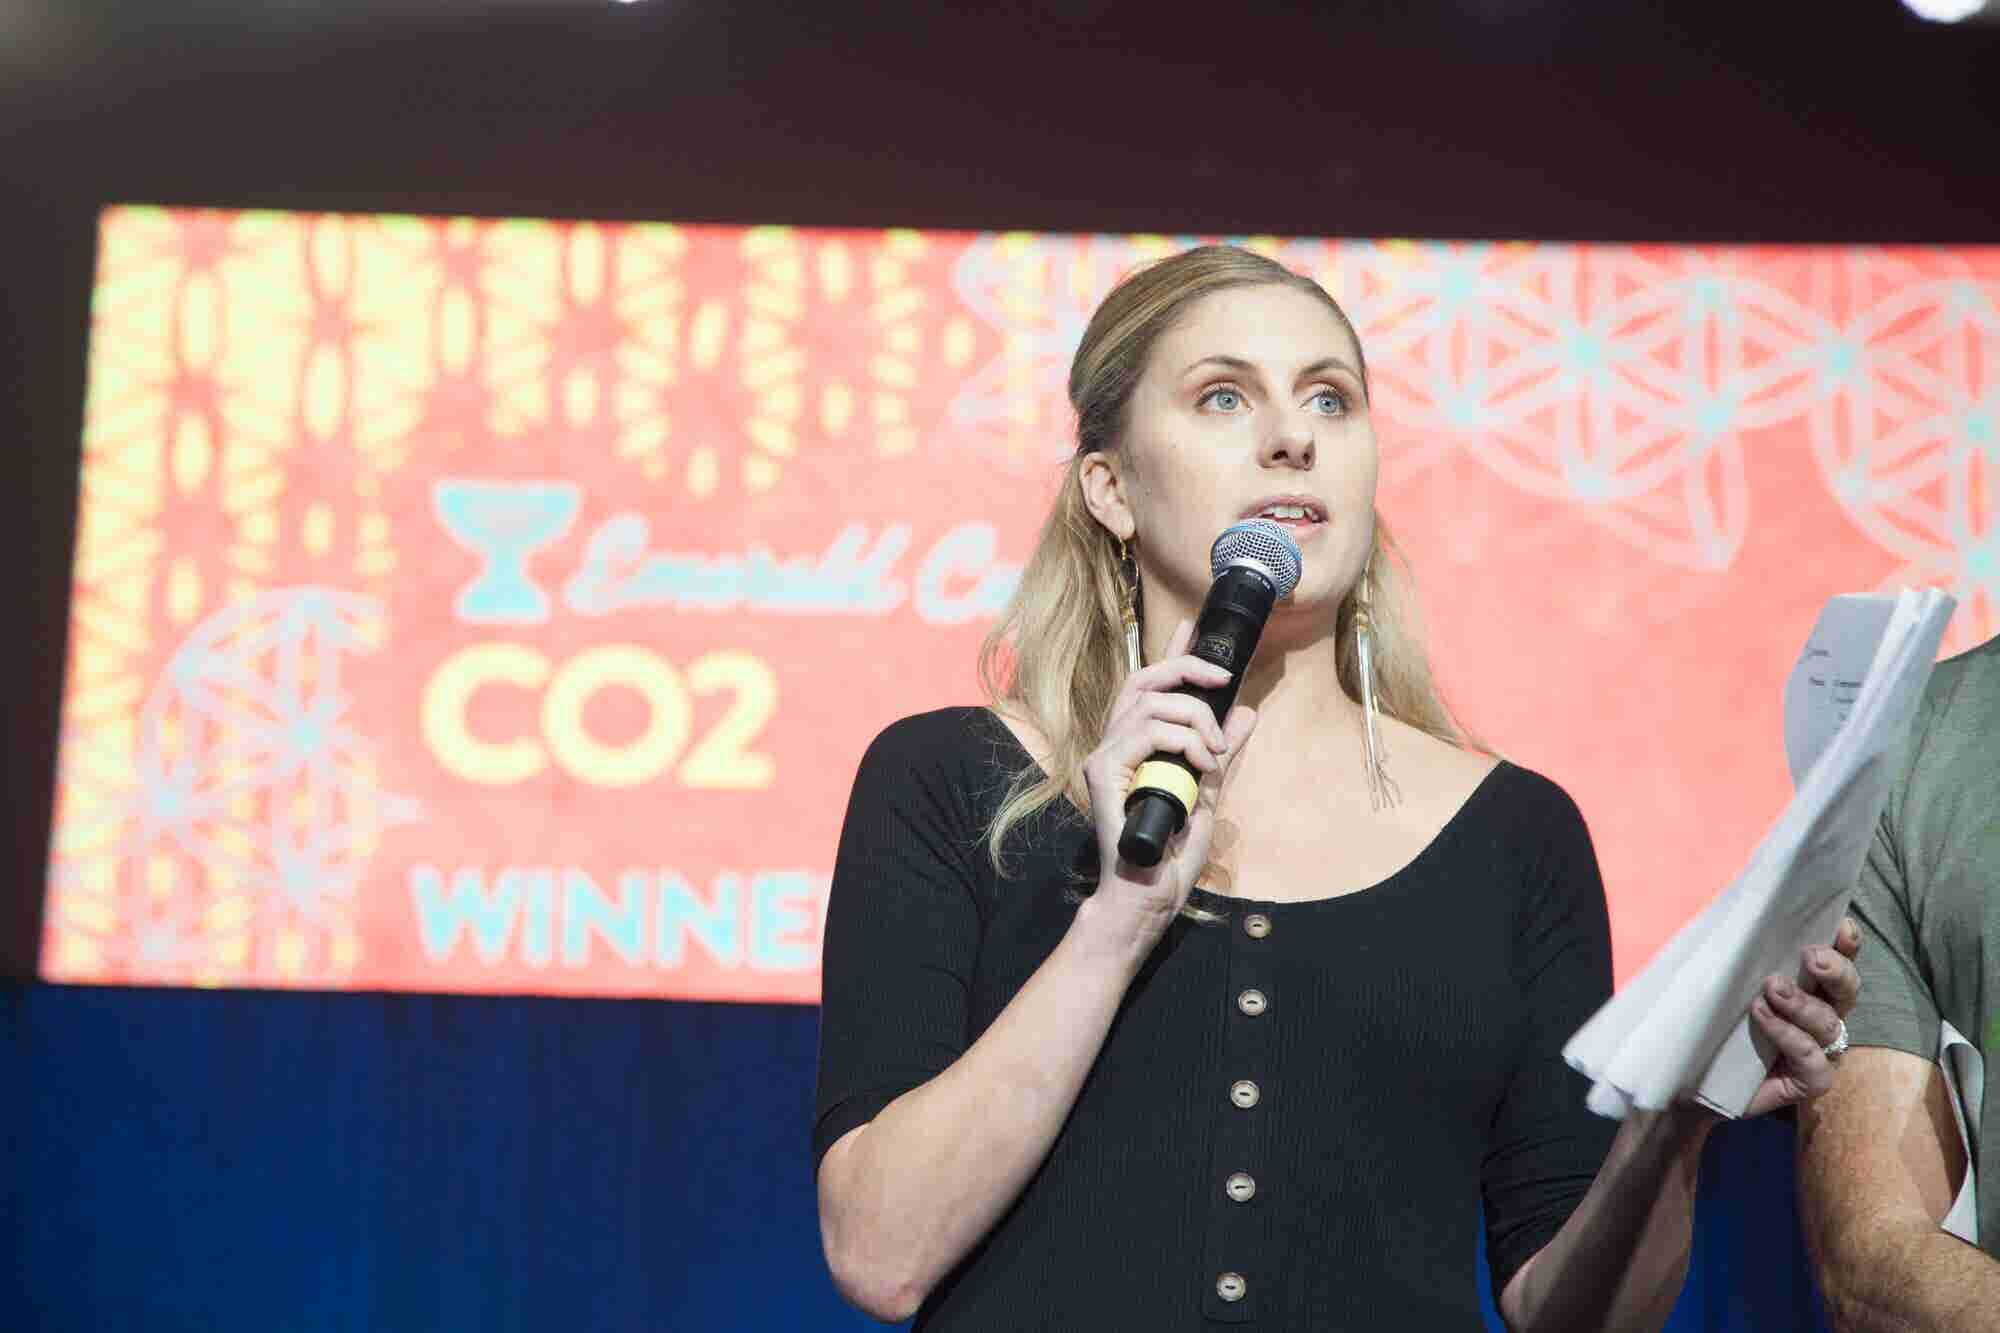 Her Dad Founded the Emerald Cup and Now She Is Co-Producer of the Industry's Largest Festival